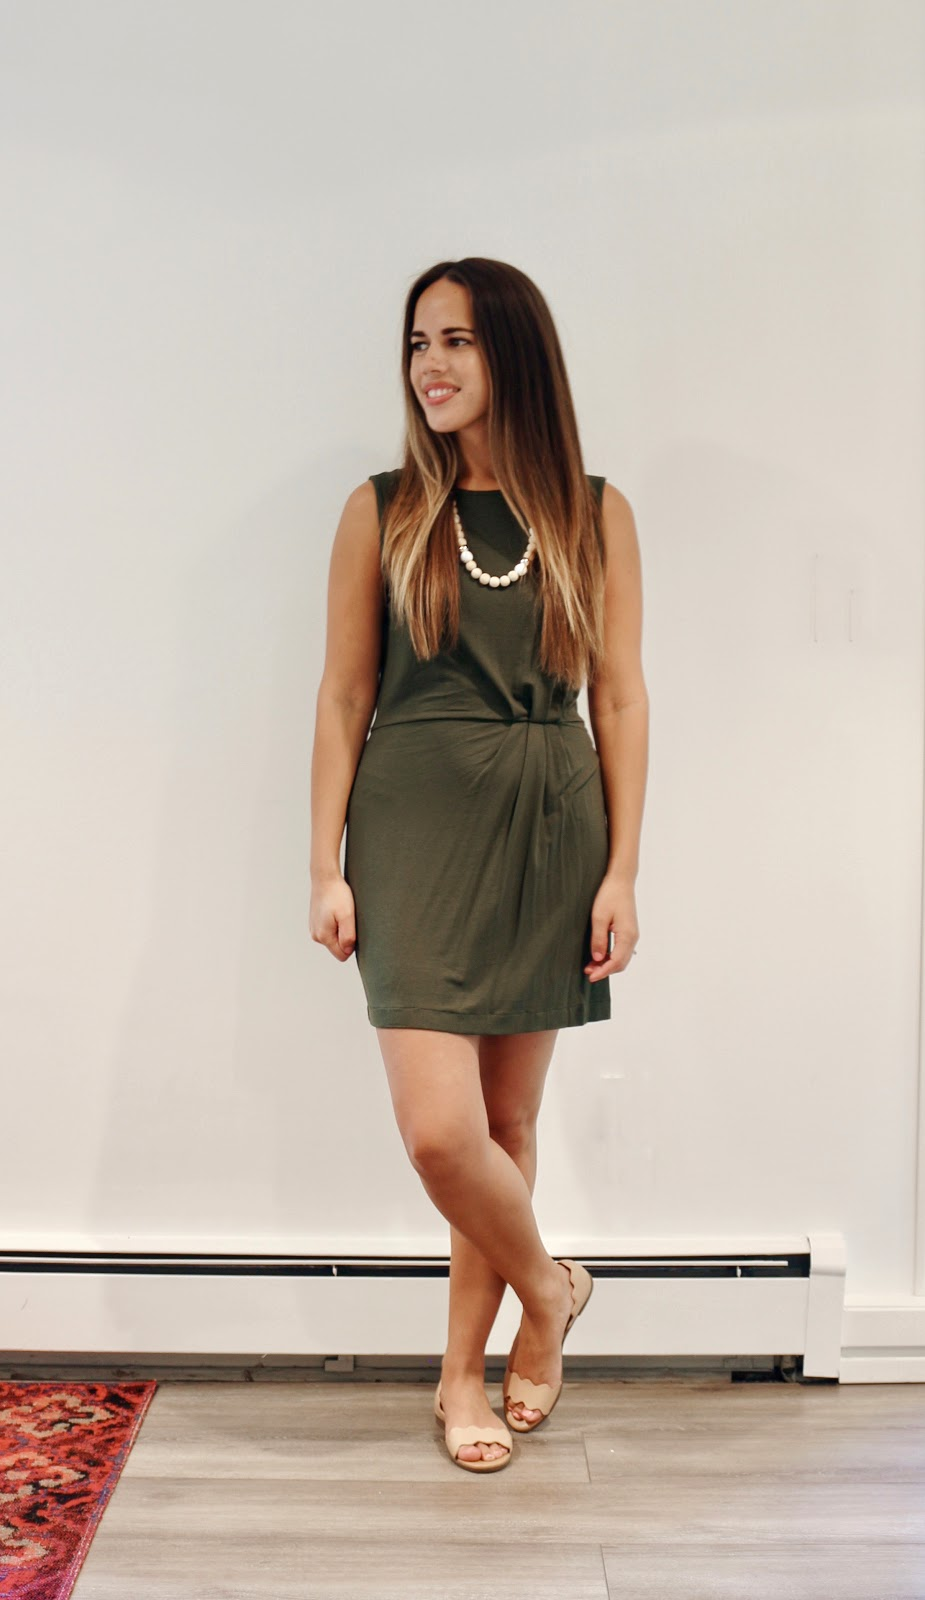 Jules in Flats -  Olive Green Jersey Dress (Business Casual Summer Workwear on a Budget)